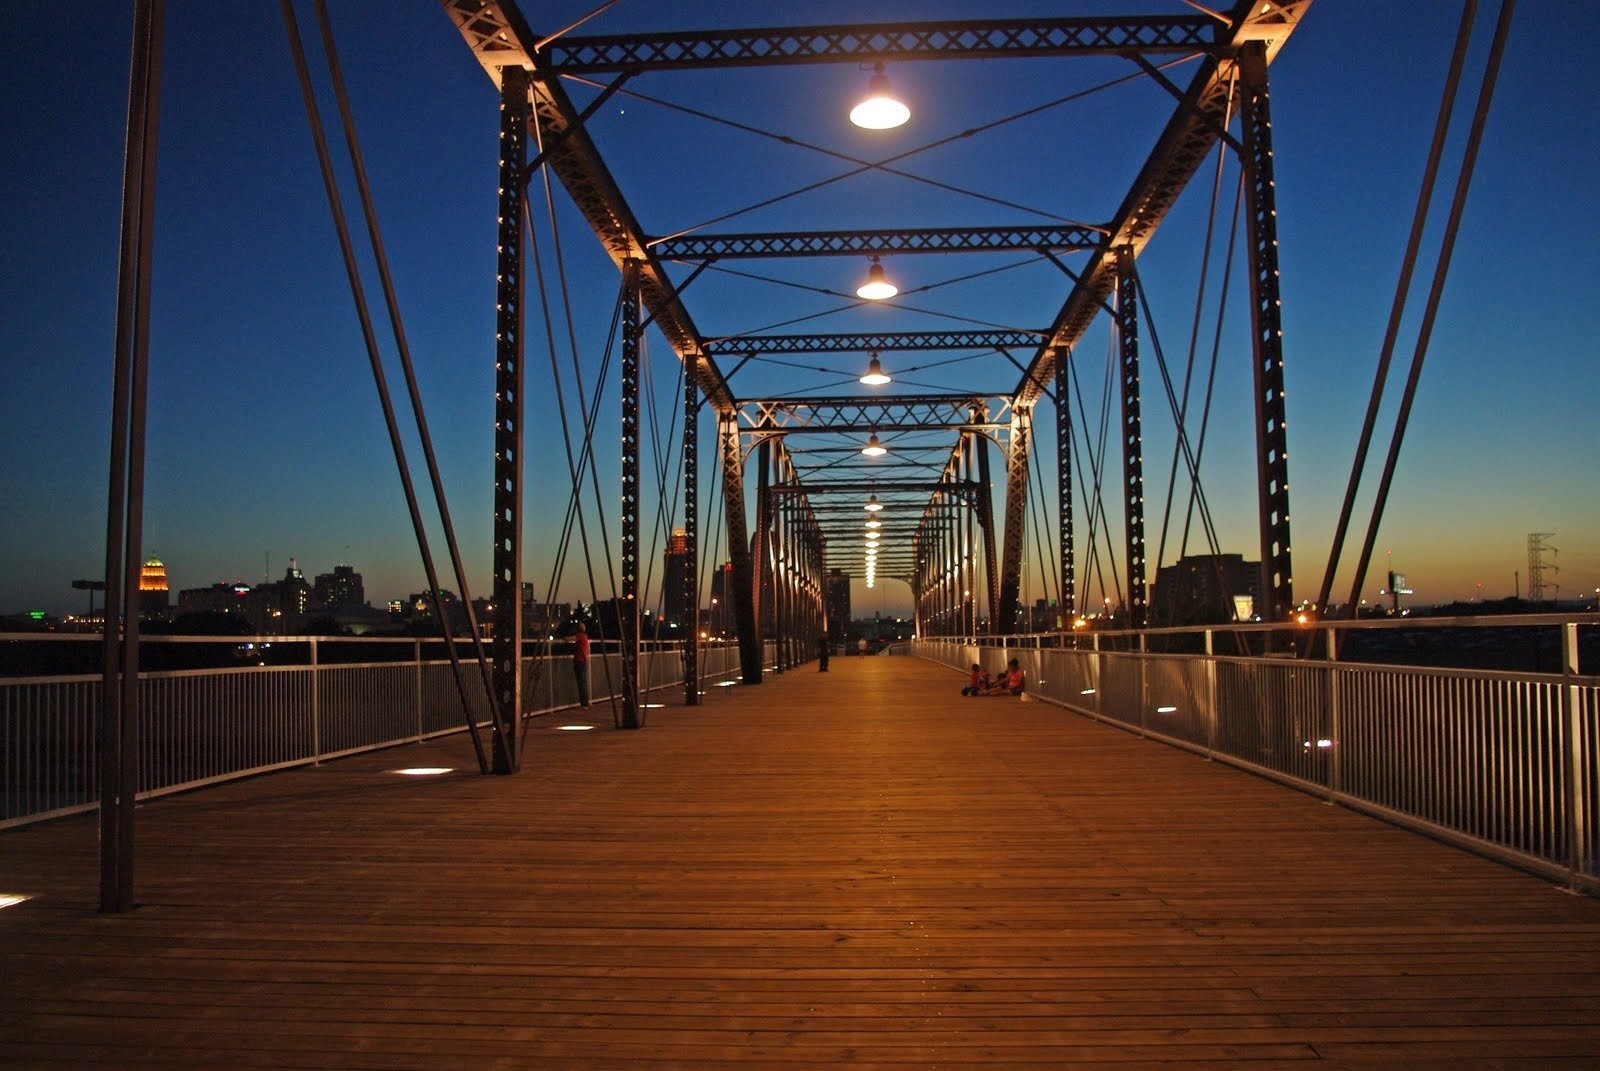 10 Stylish Date Ideas In San Antonio hays street bridge amazing views and really nice architecture